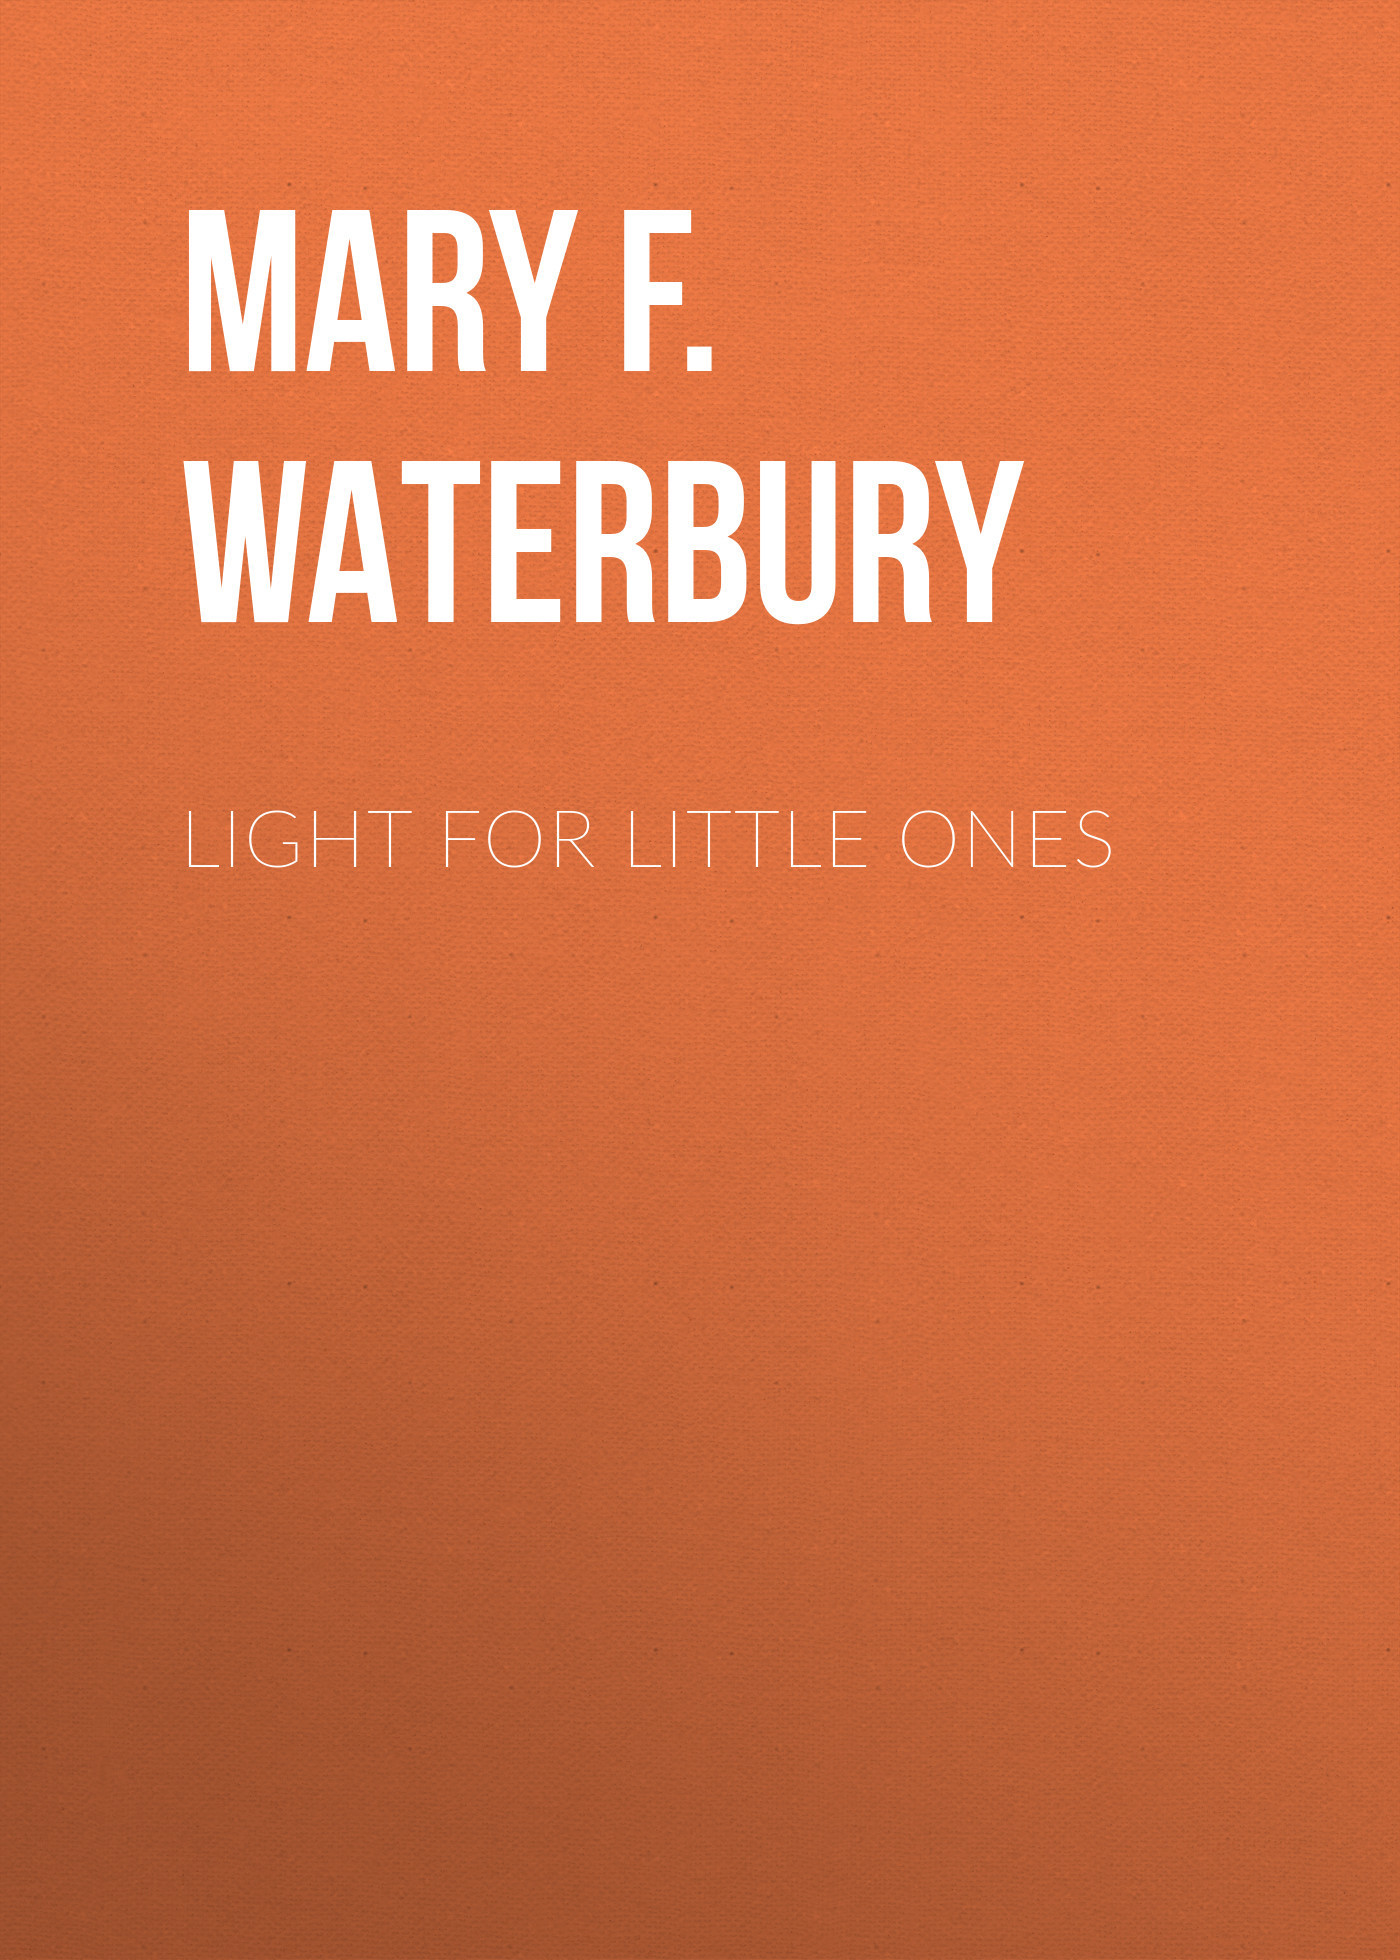 Mary F. Waterbury Light for Little Ones